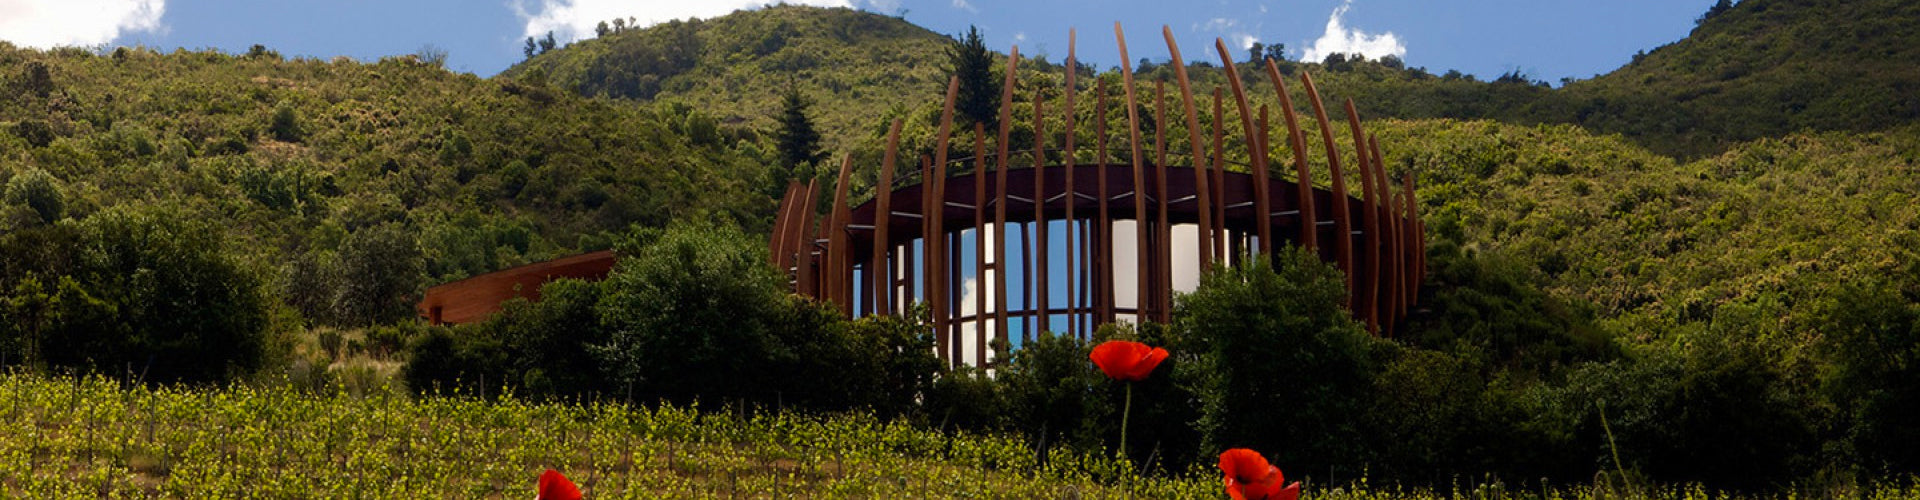 The Clos Apalta Winery in Chiles Colchagua Valley